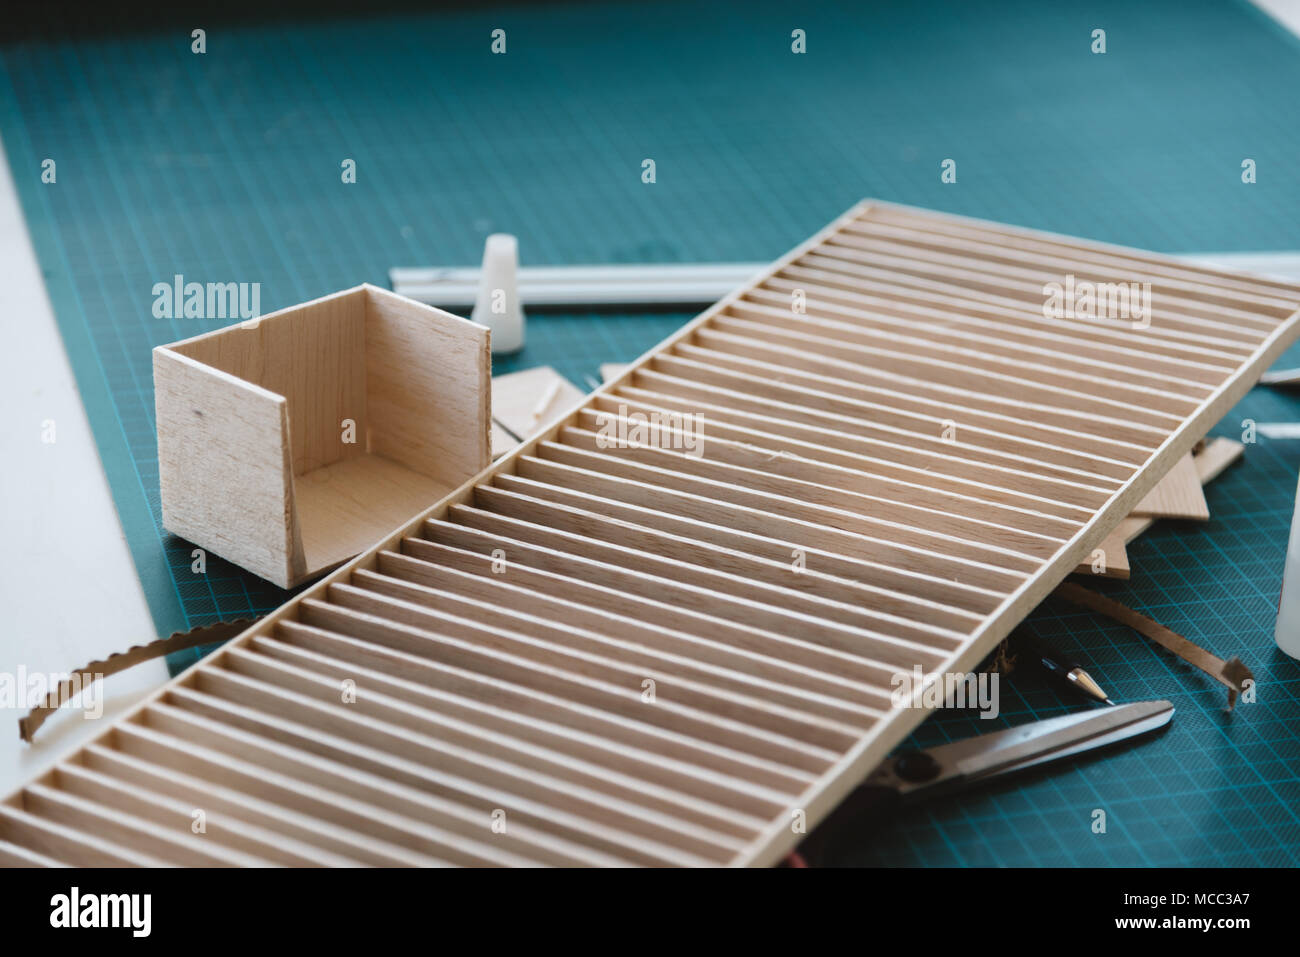 Works of wooden architecture model. Close up - Stock Image